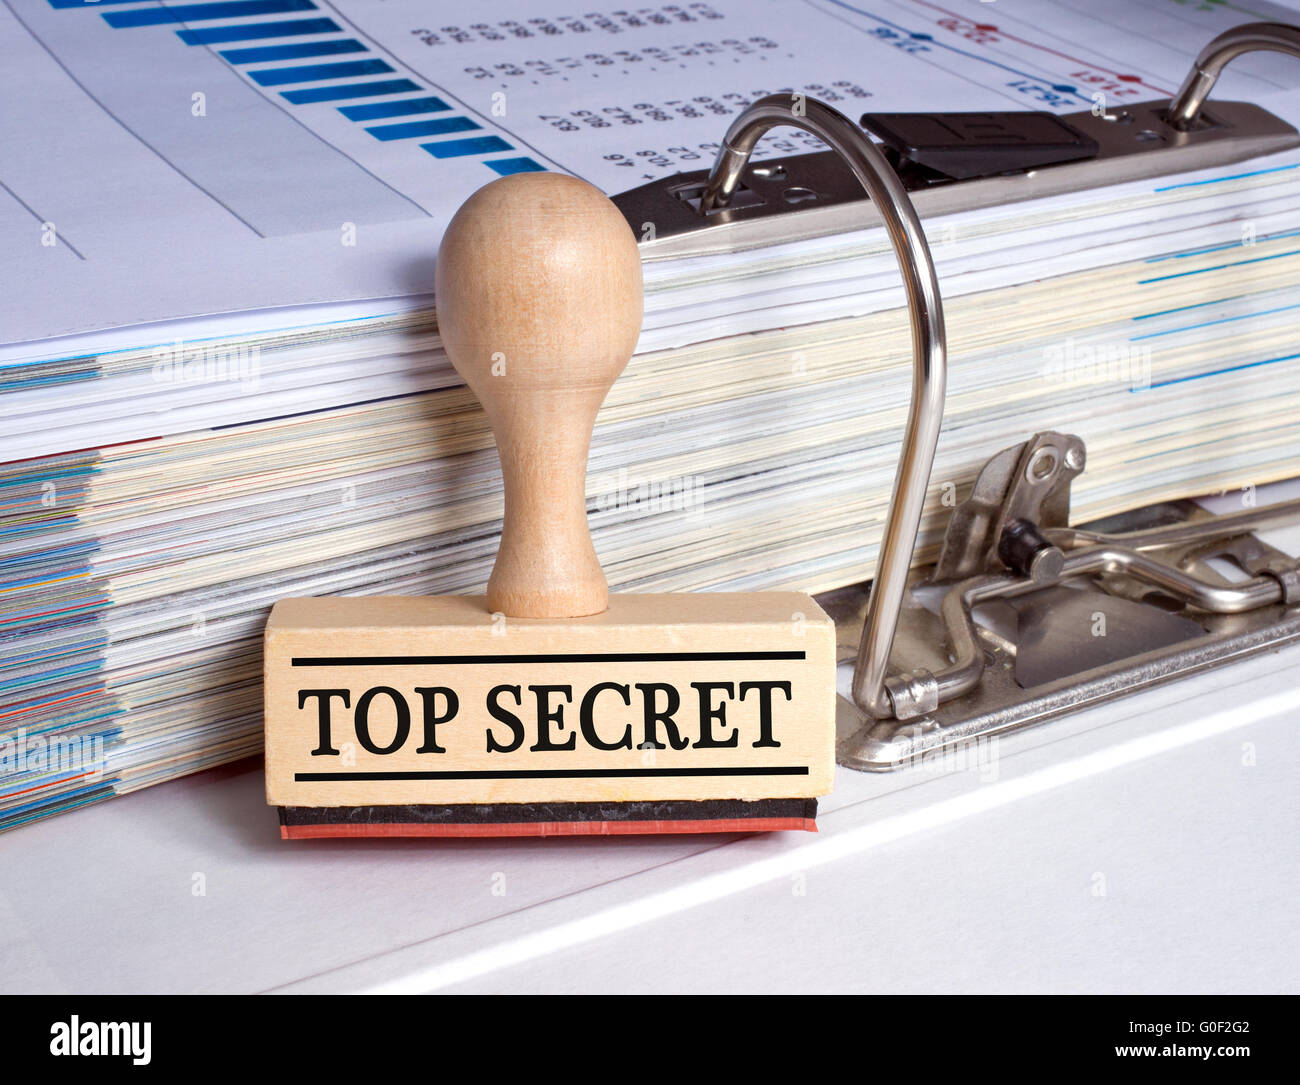 Top Secret rubber stamp in the office Stock Photo